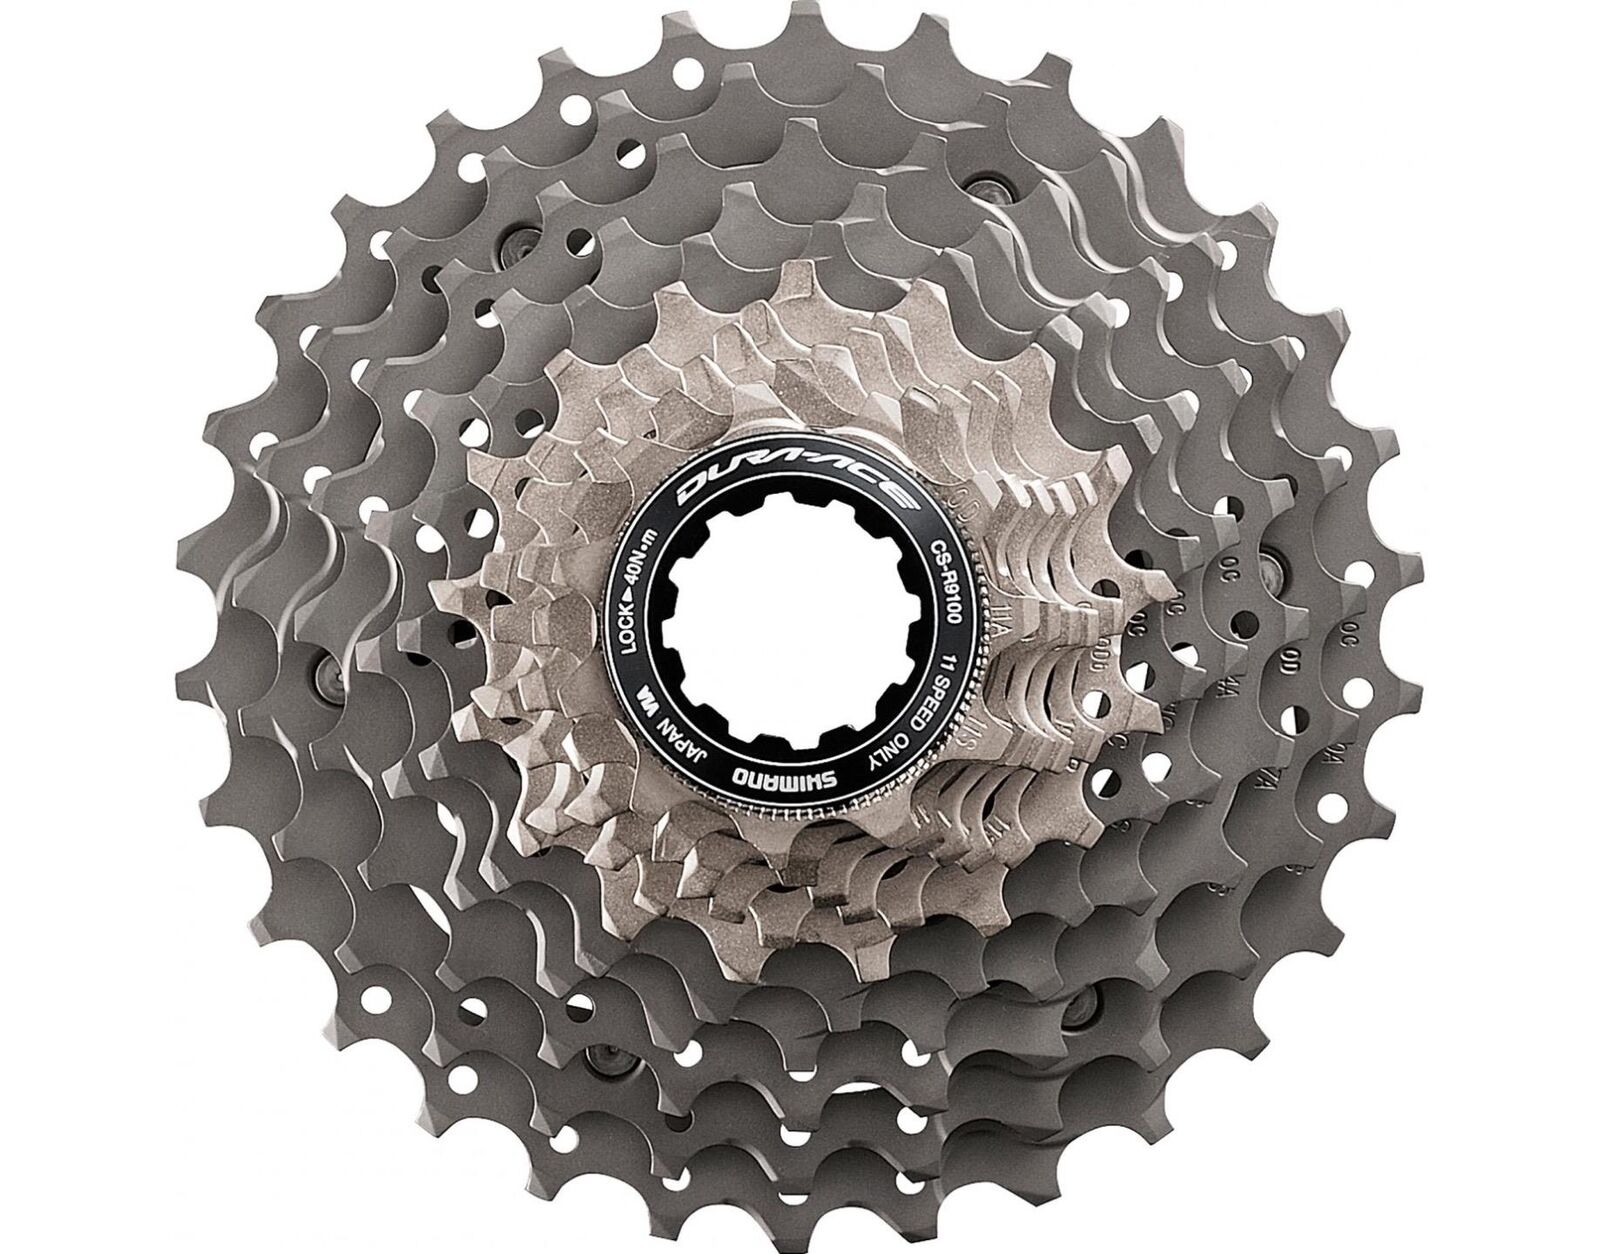 Shimano CS-R9100 Dura-Ace 12-28t Cassette  11-Speed 9000 11Spd ICSR910011228  hastened to see